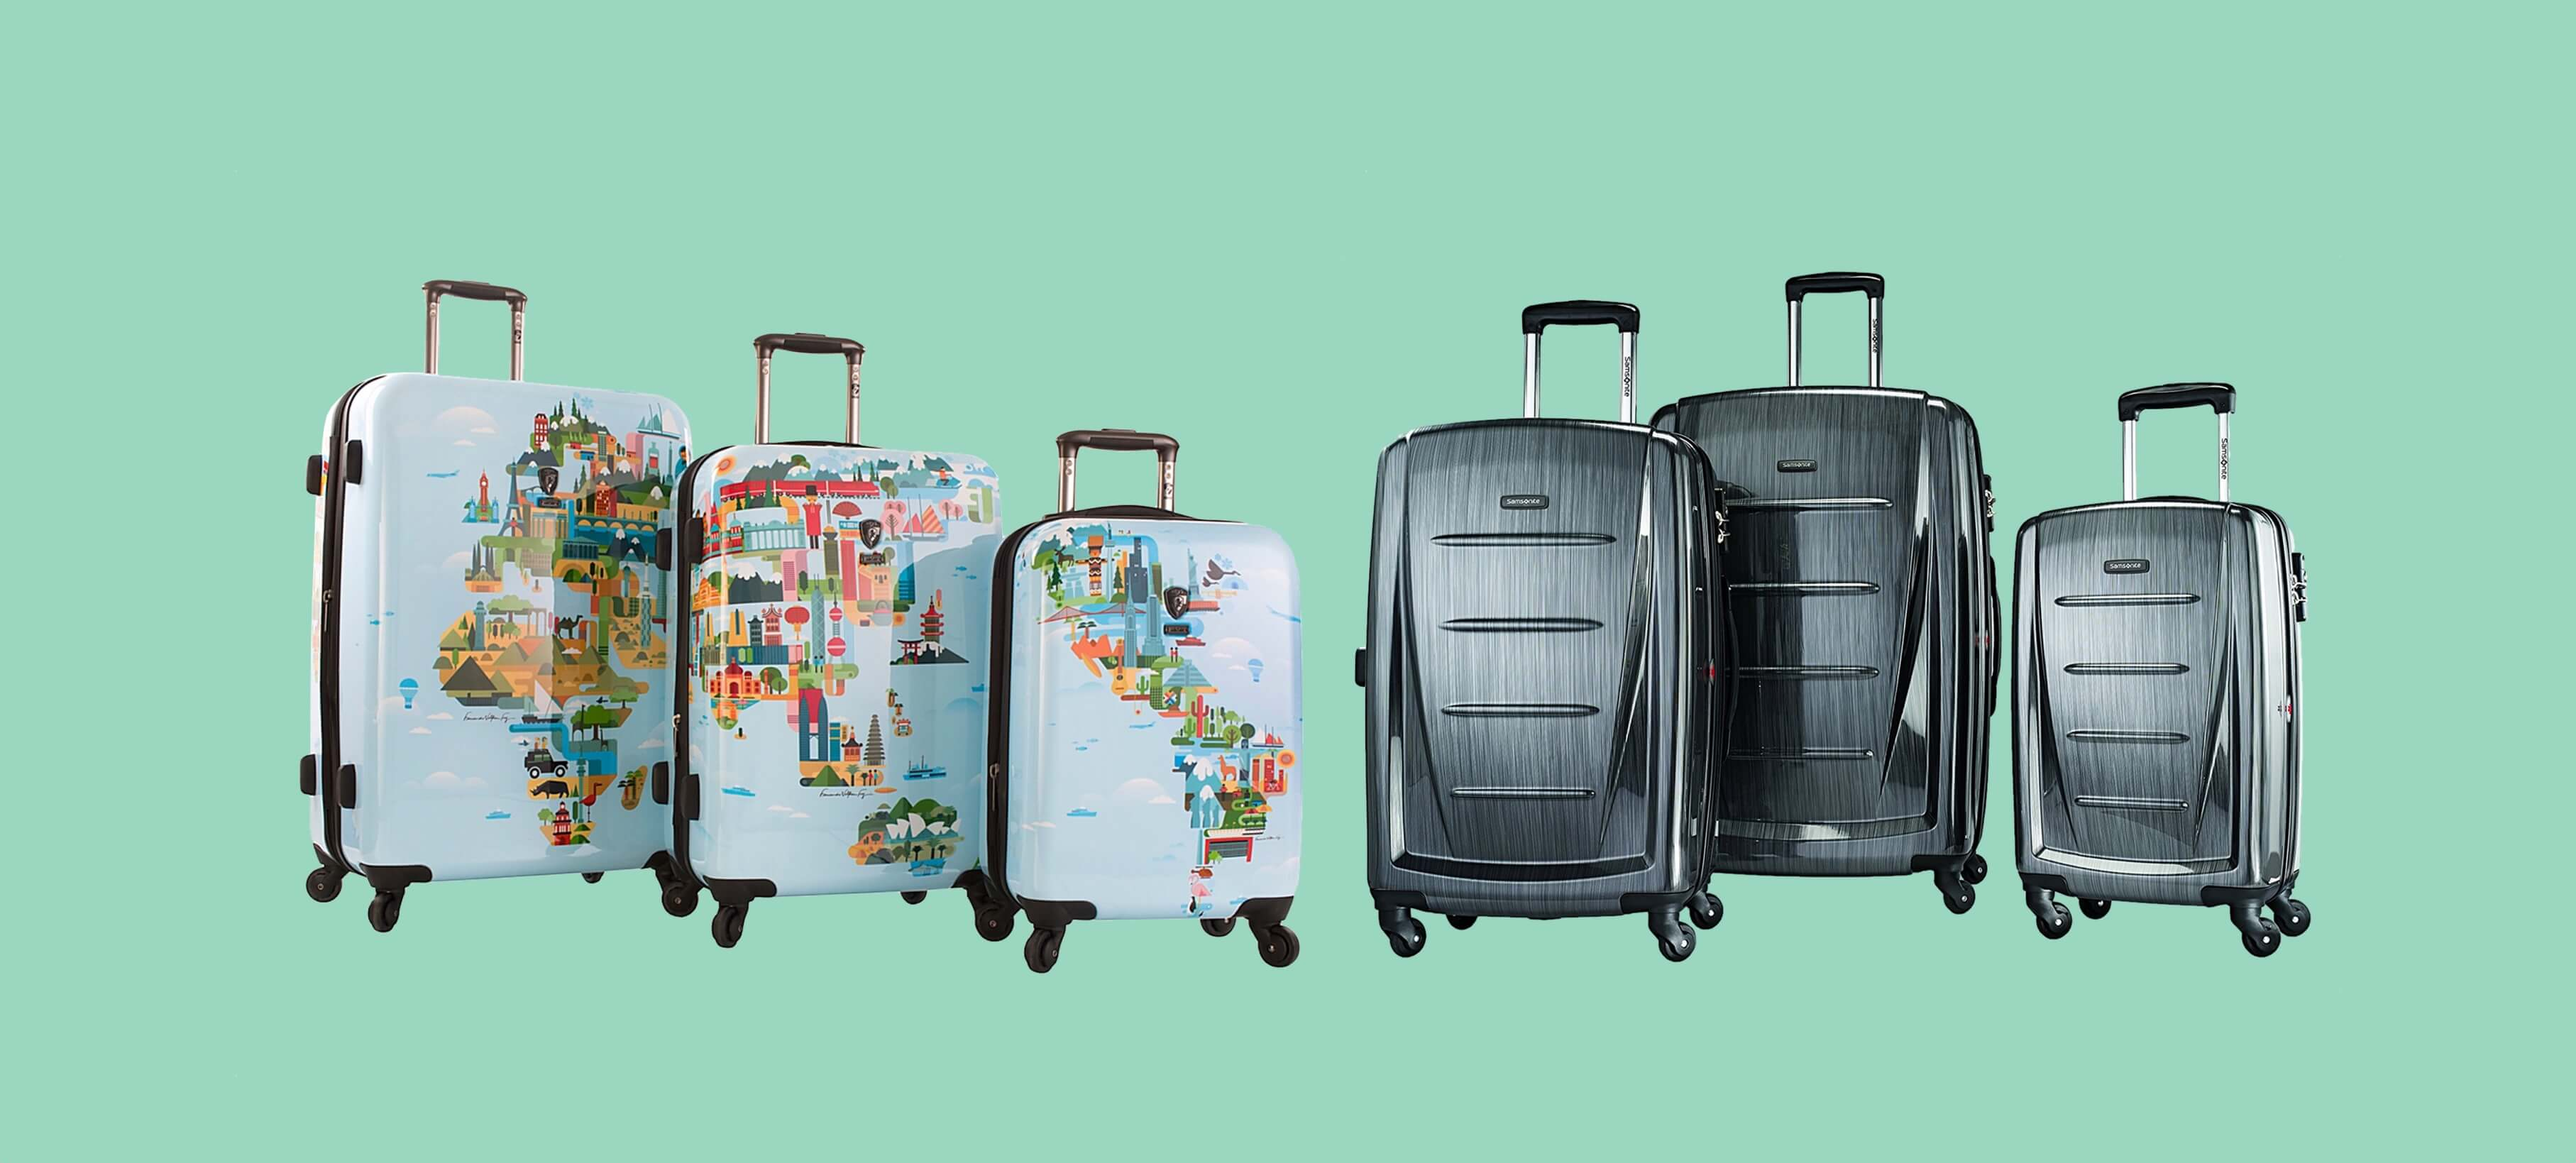 Family Luggage Sets 7 Best For Travel